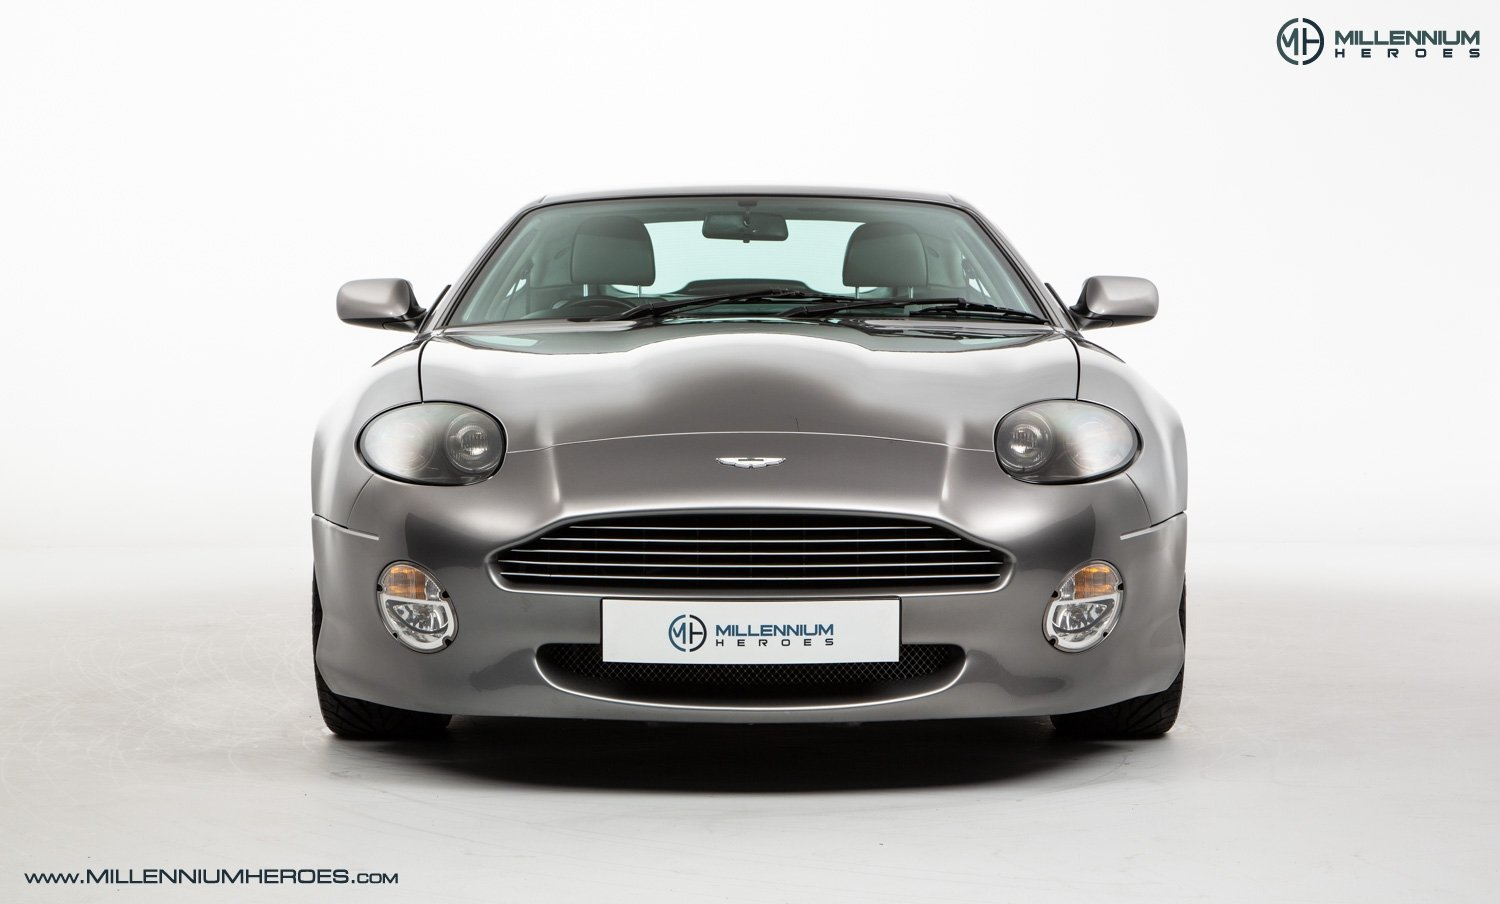 2000 ASTON MARTIN DB7 5.9 VANTAGE  For Sale (picture 5 of 24)